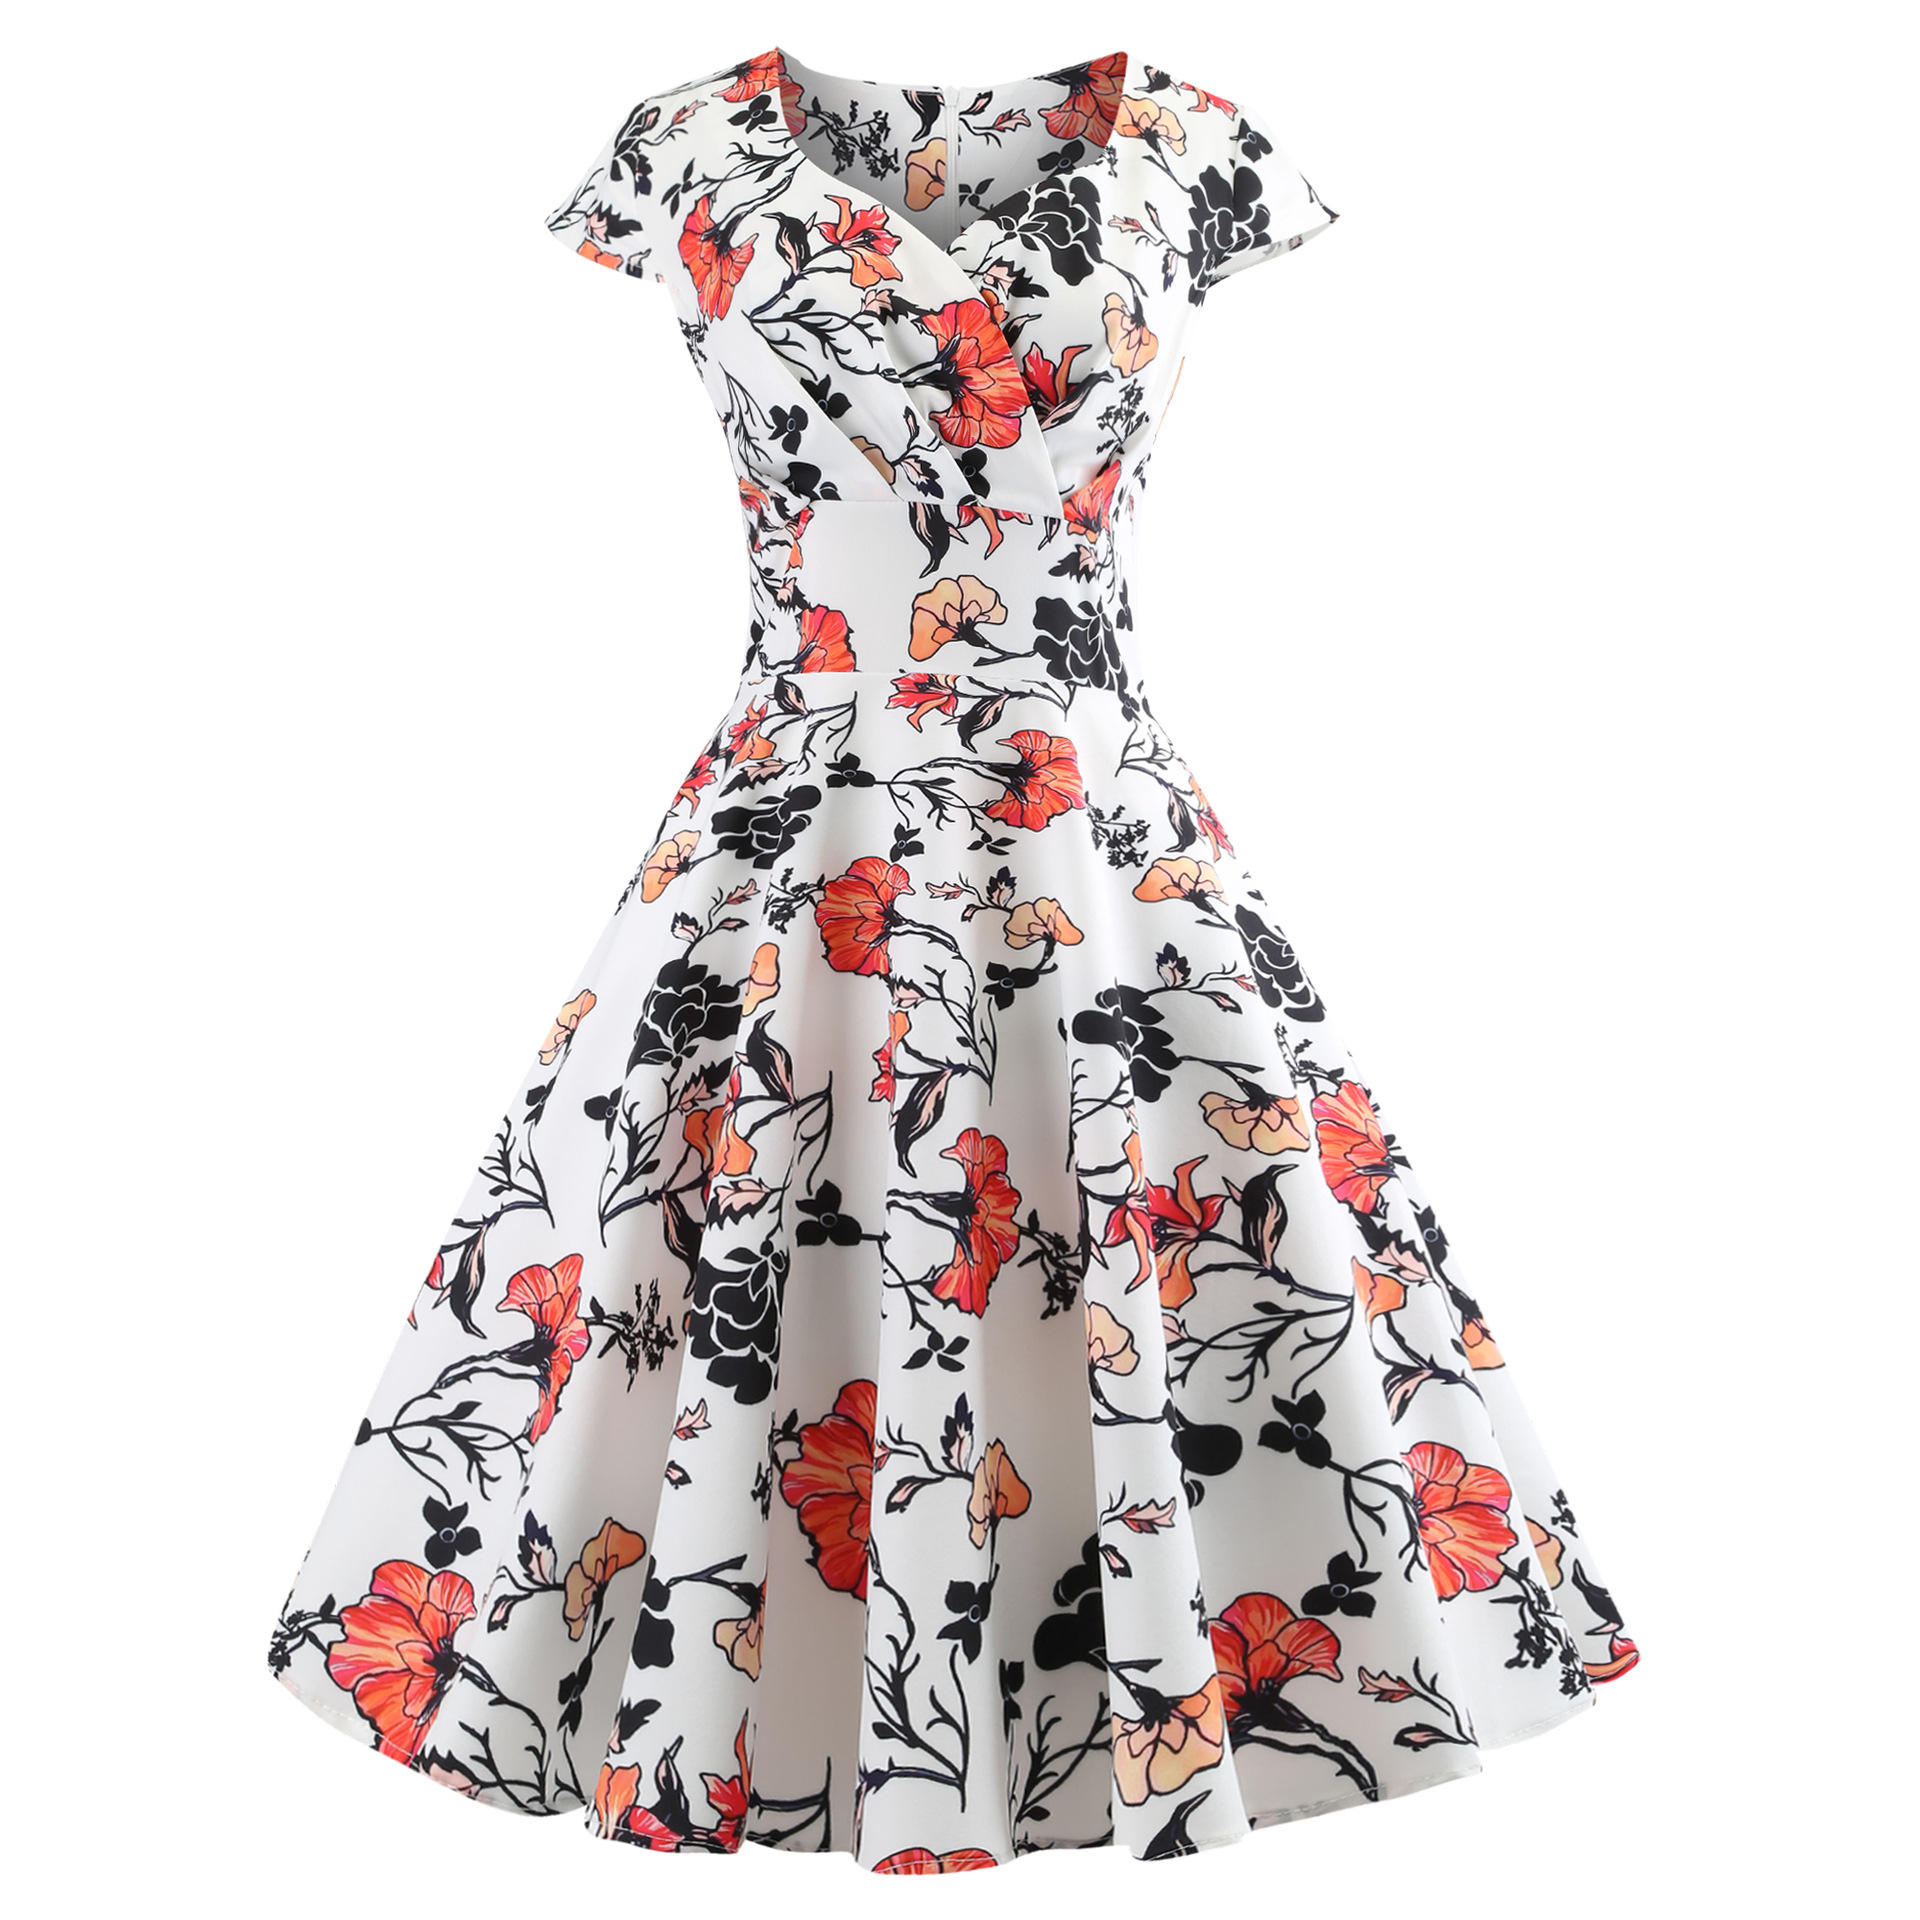 Ecoparty Floral Print Summer Women Vintage 50S 60S Short Sleeve V Neck Casual Elegant Dresses